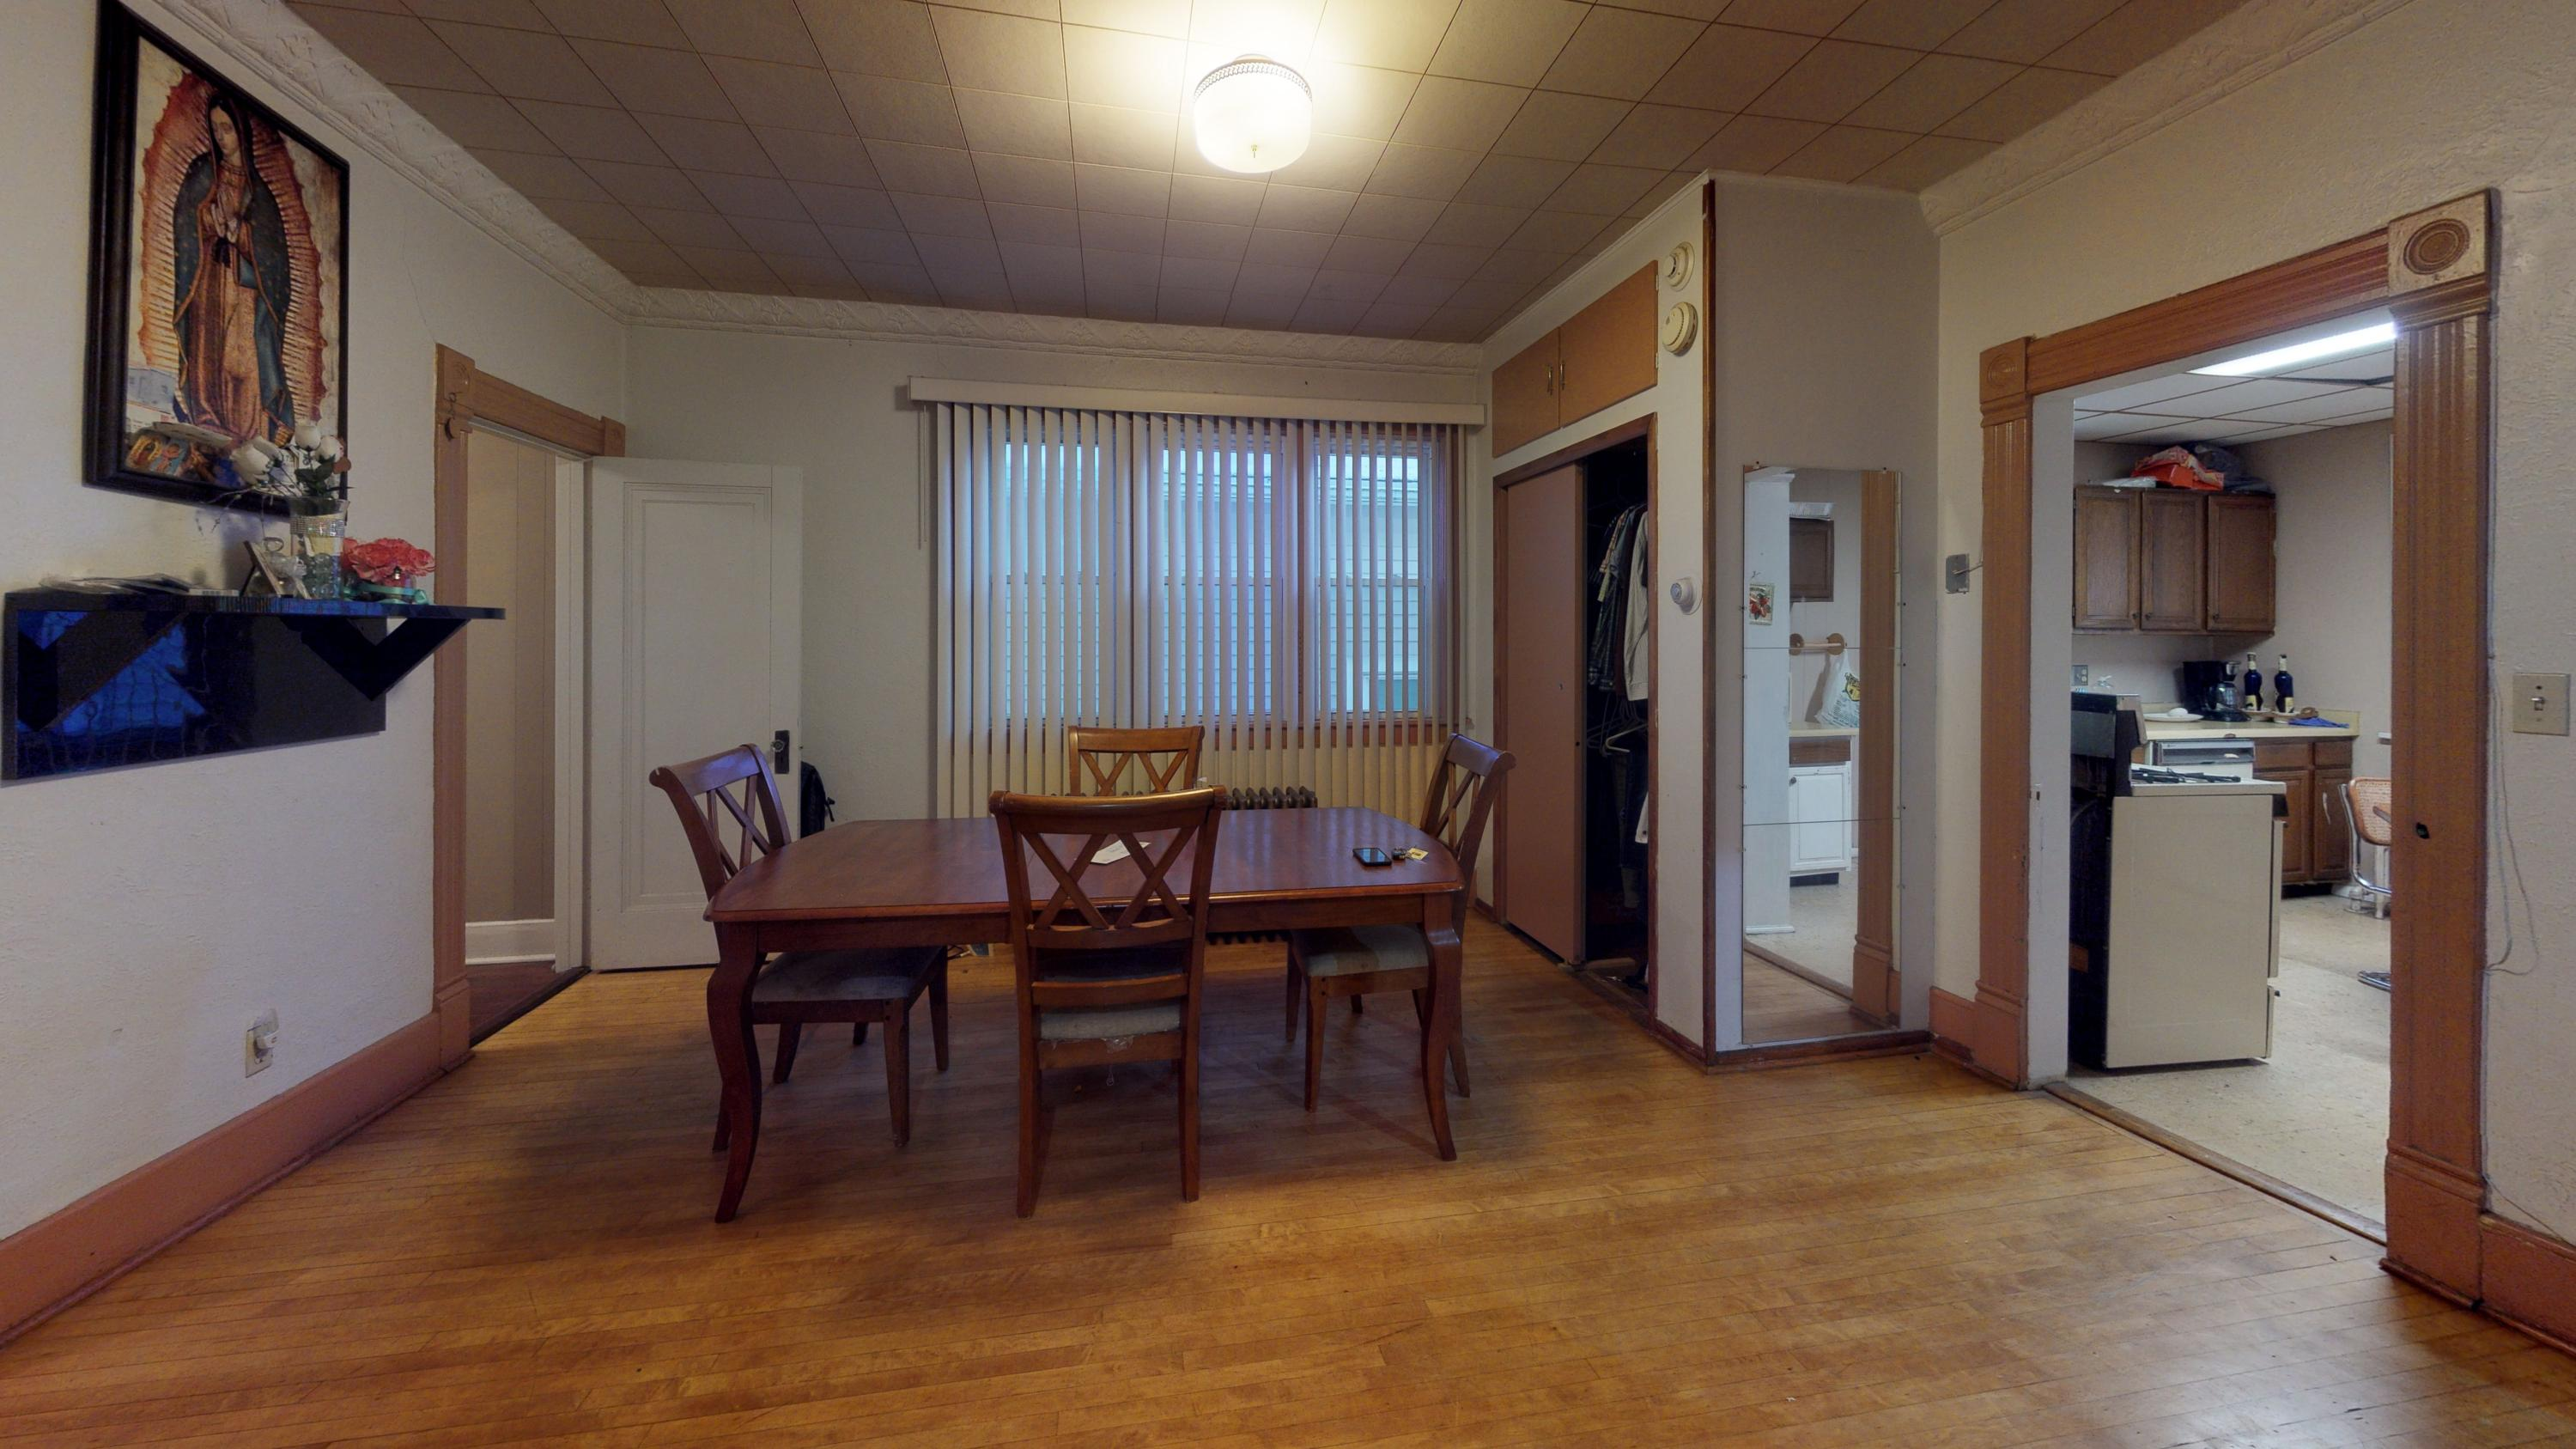 2439 8th ST, Milwaukee, Wisconsin 53215, 3 Bedrooms Bedrooms, 6 Rooms Rooms,1 BathroomBathrooms,Two-Family,For Sale,8th ST,1,1677011